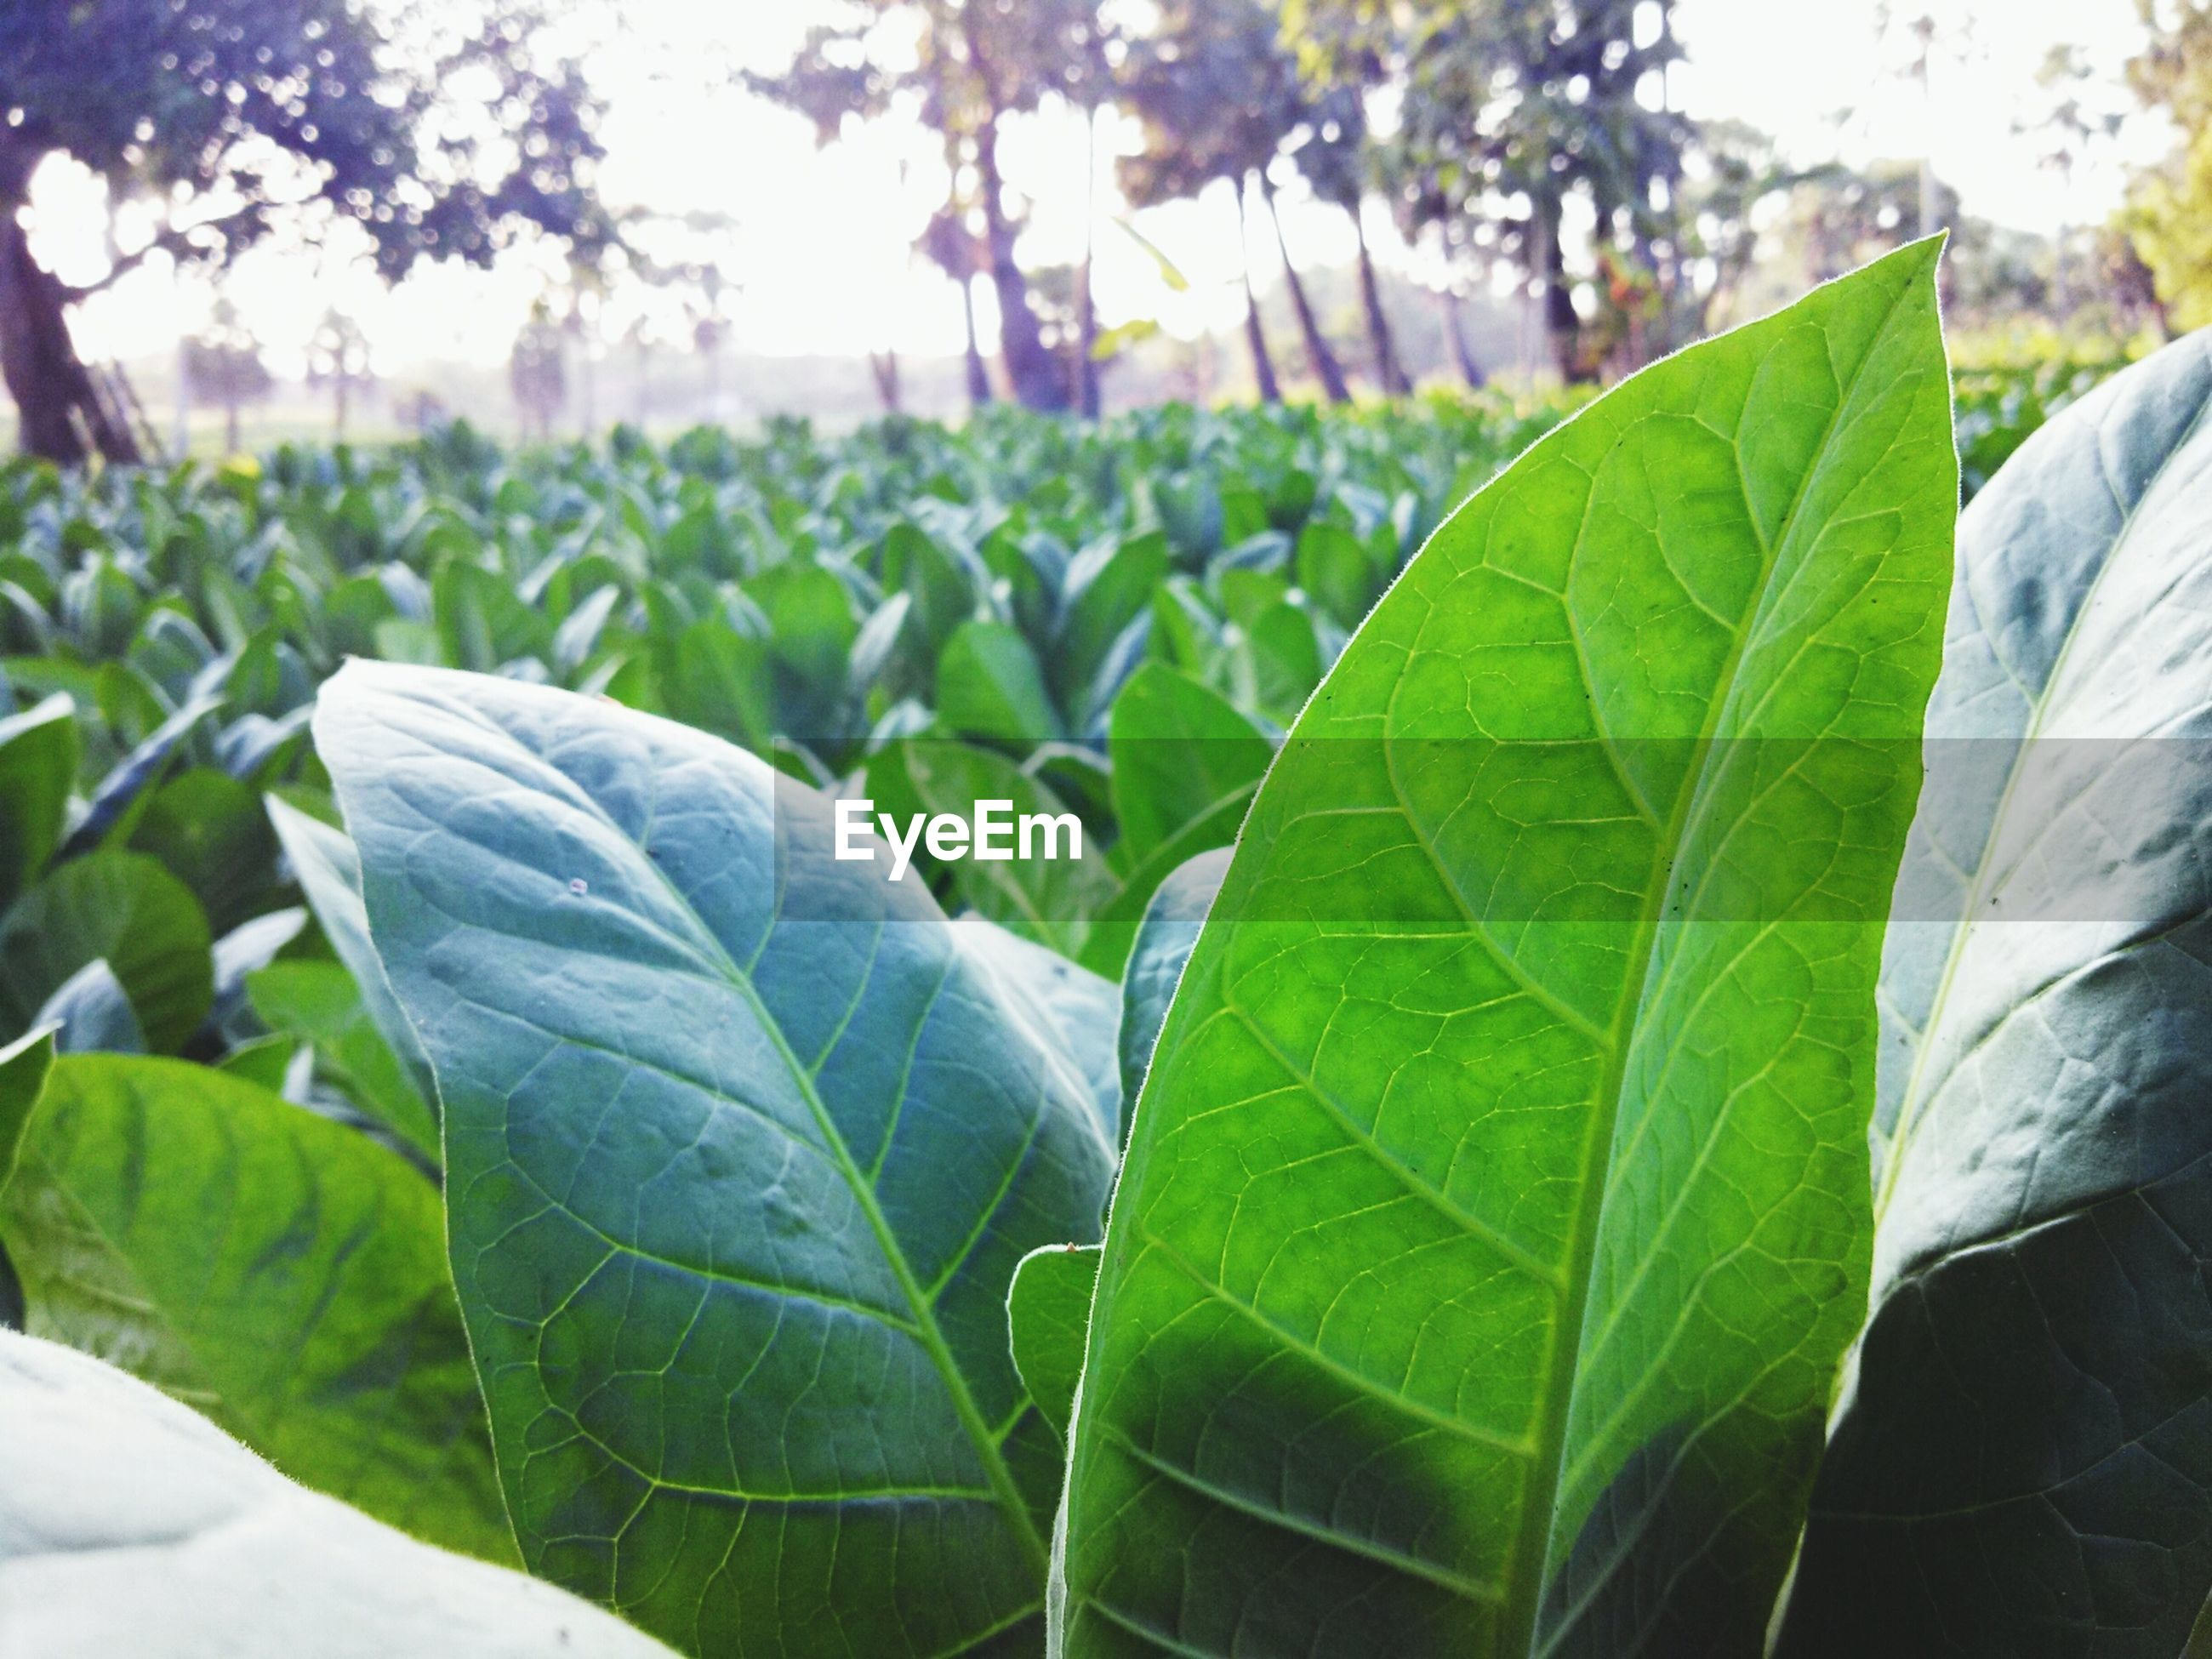 leaf, green color, growth, plant, focus on foreground, close-up, nature, leaf vein, freshness, beauty in nature, green, field, day, outdoors, tranquility, leaves, no people, selective focus, growing, sunlight